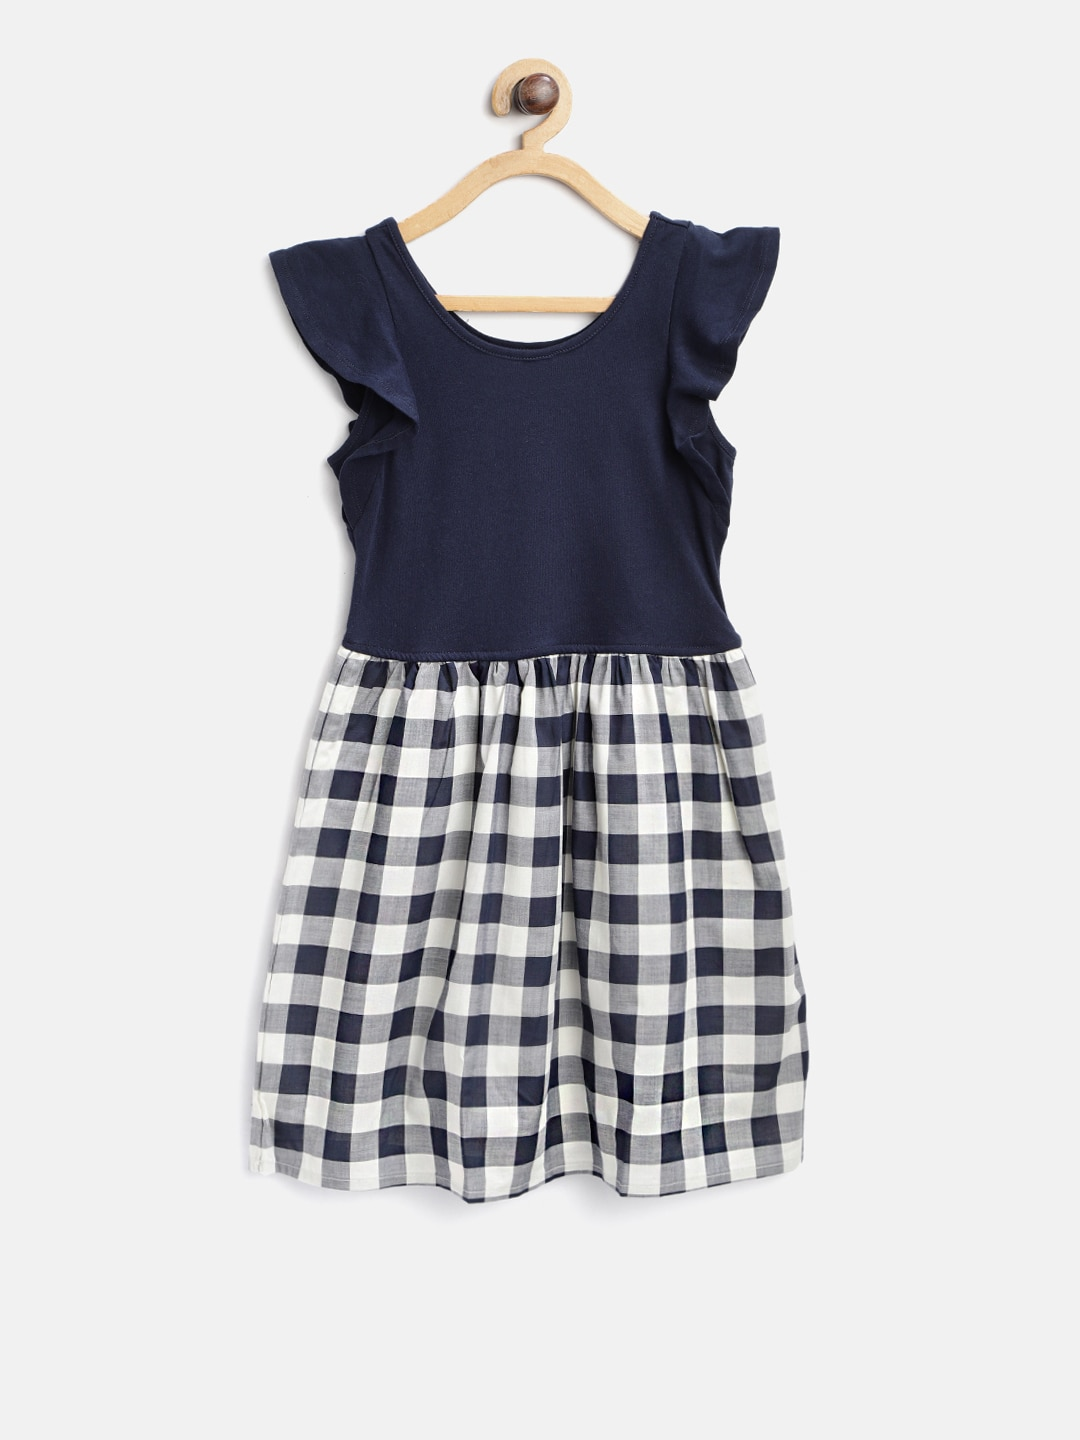 4c64bf71090 Girls Casual Wear Dresses - Buy Girls Casual Wear Dresses online in India